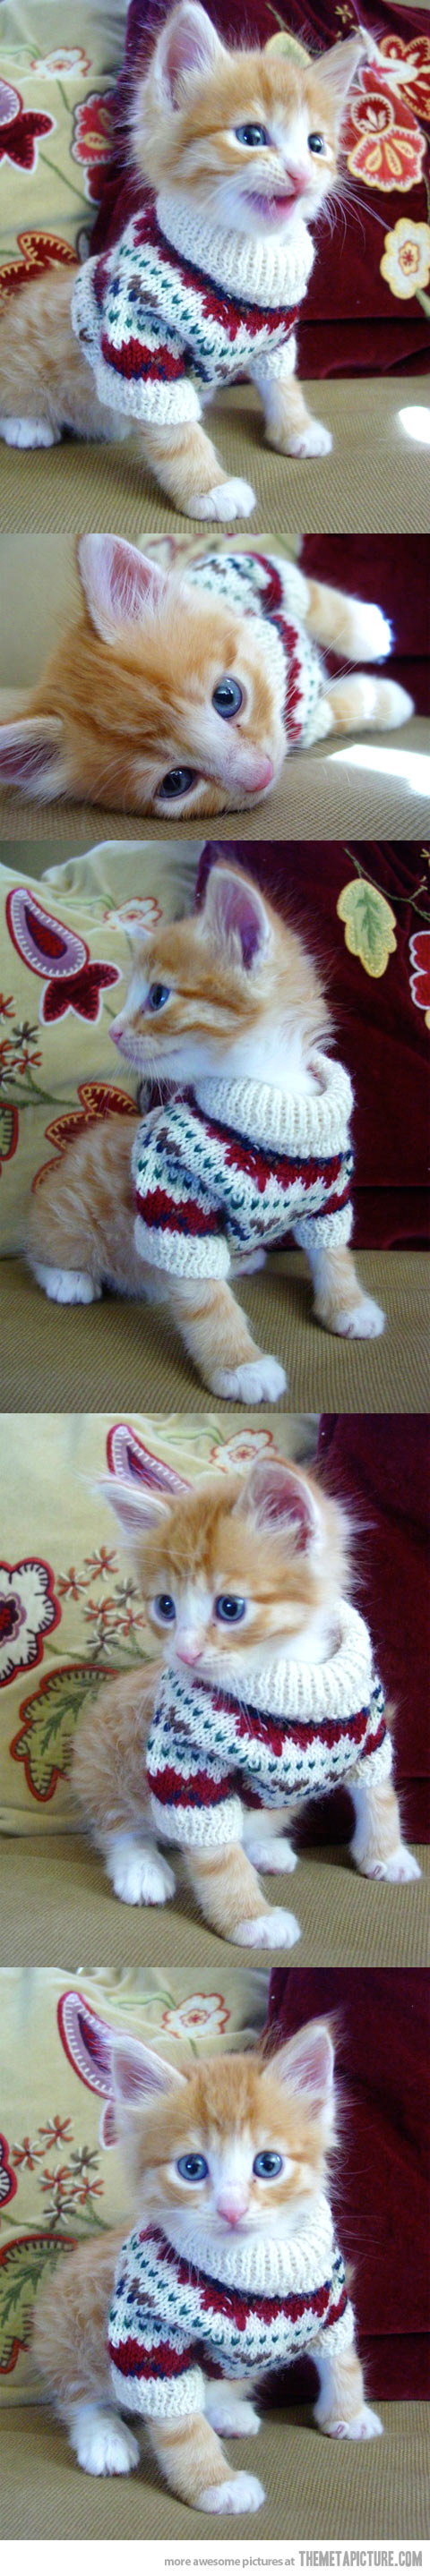 cute-kitten-sweater-clothes